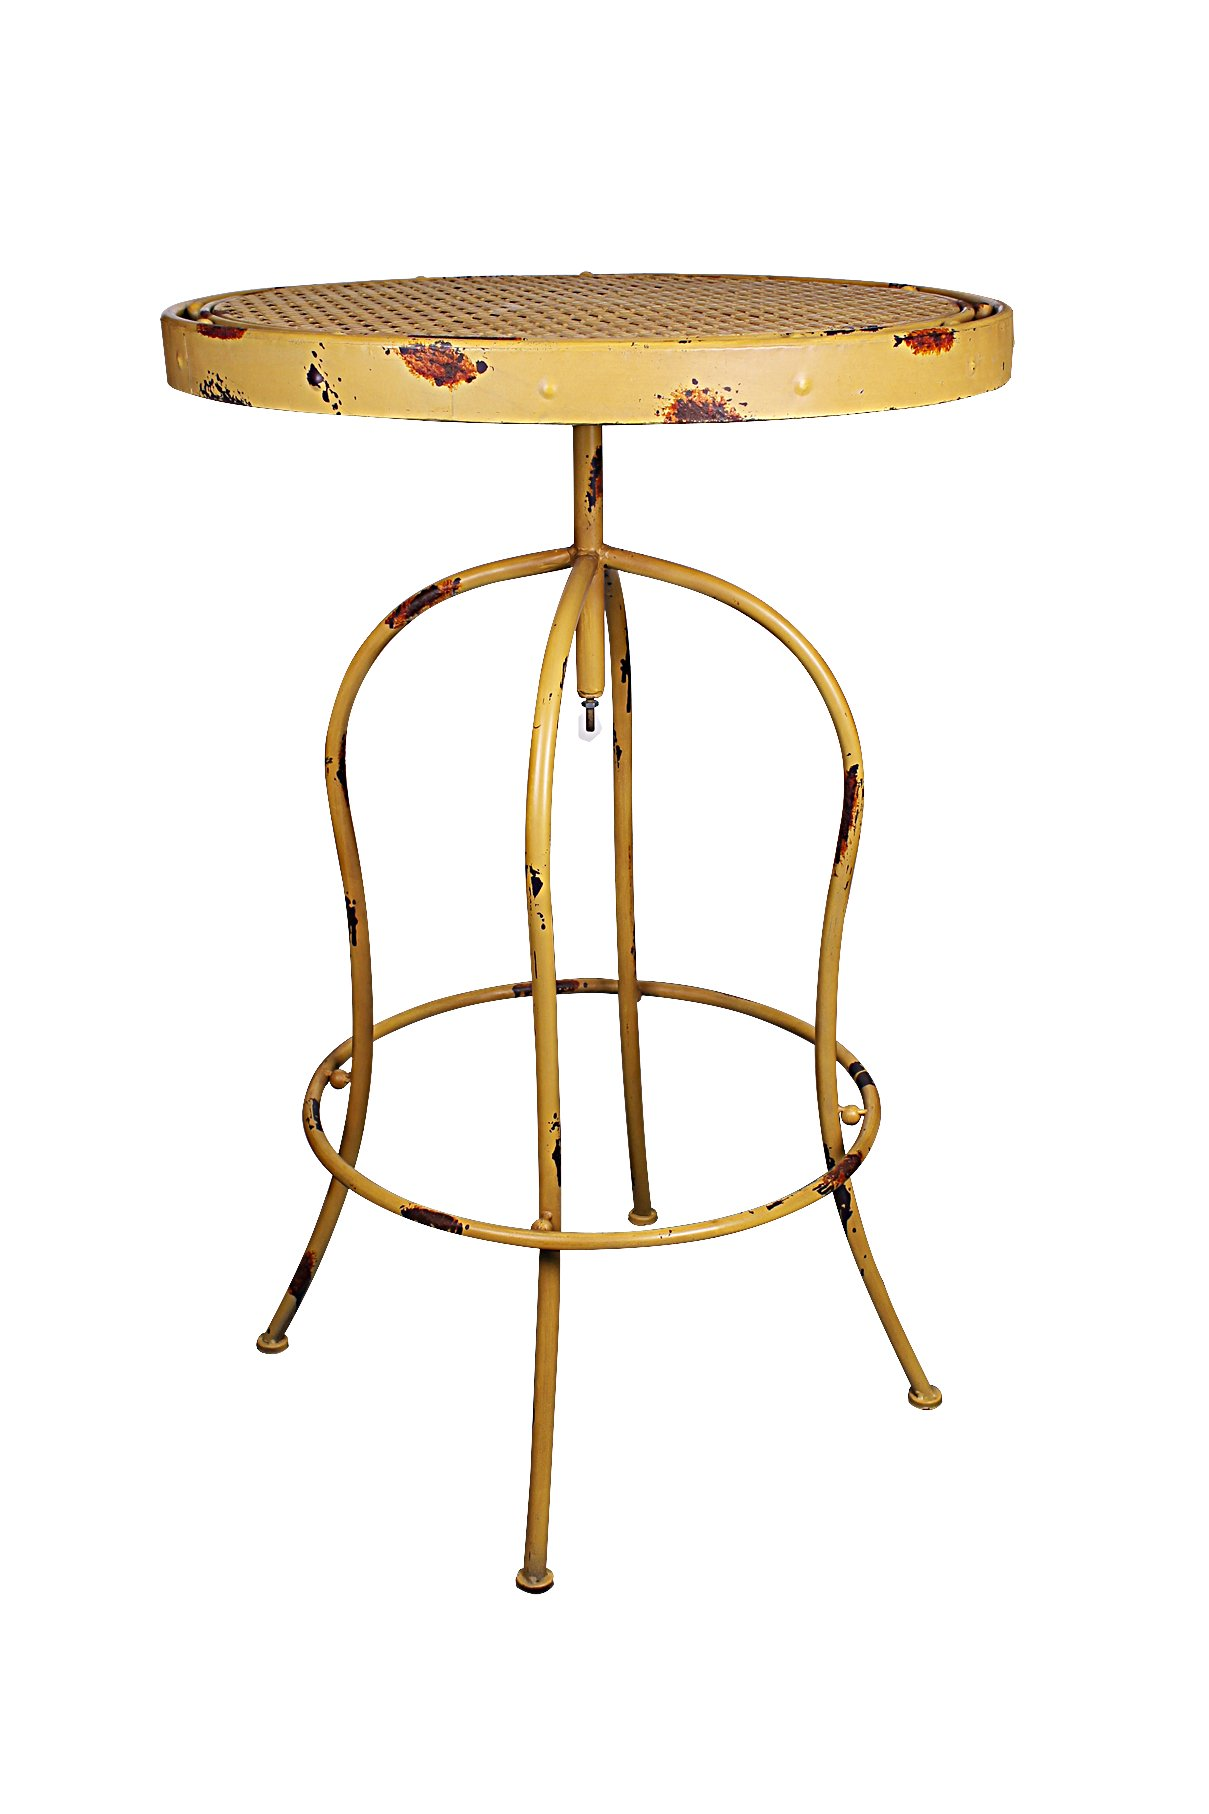 Attraction Design Nostalgia French Bistro Table, Yellow - YELLOW color; ANTIQUE TURNABLE, Handy Paint ROUND; Vintage Style - patio-tables, patio-furniture, patio - 61Kz eQwjUL -